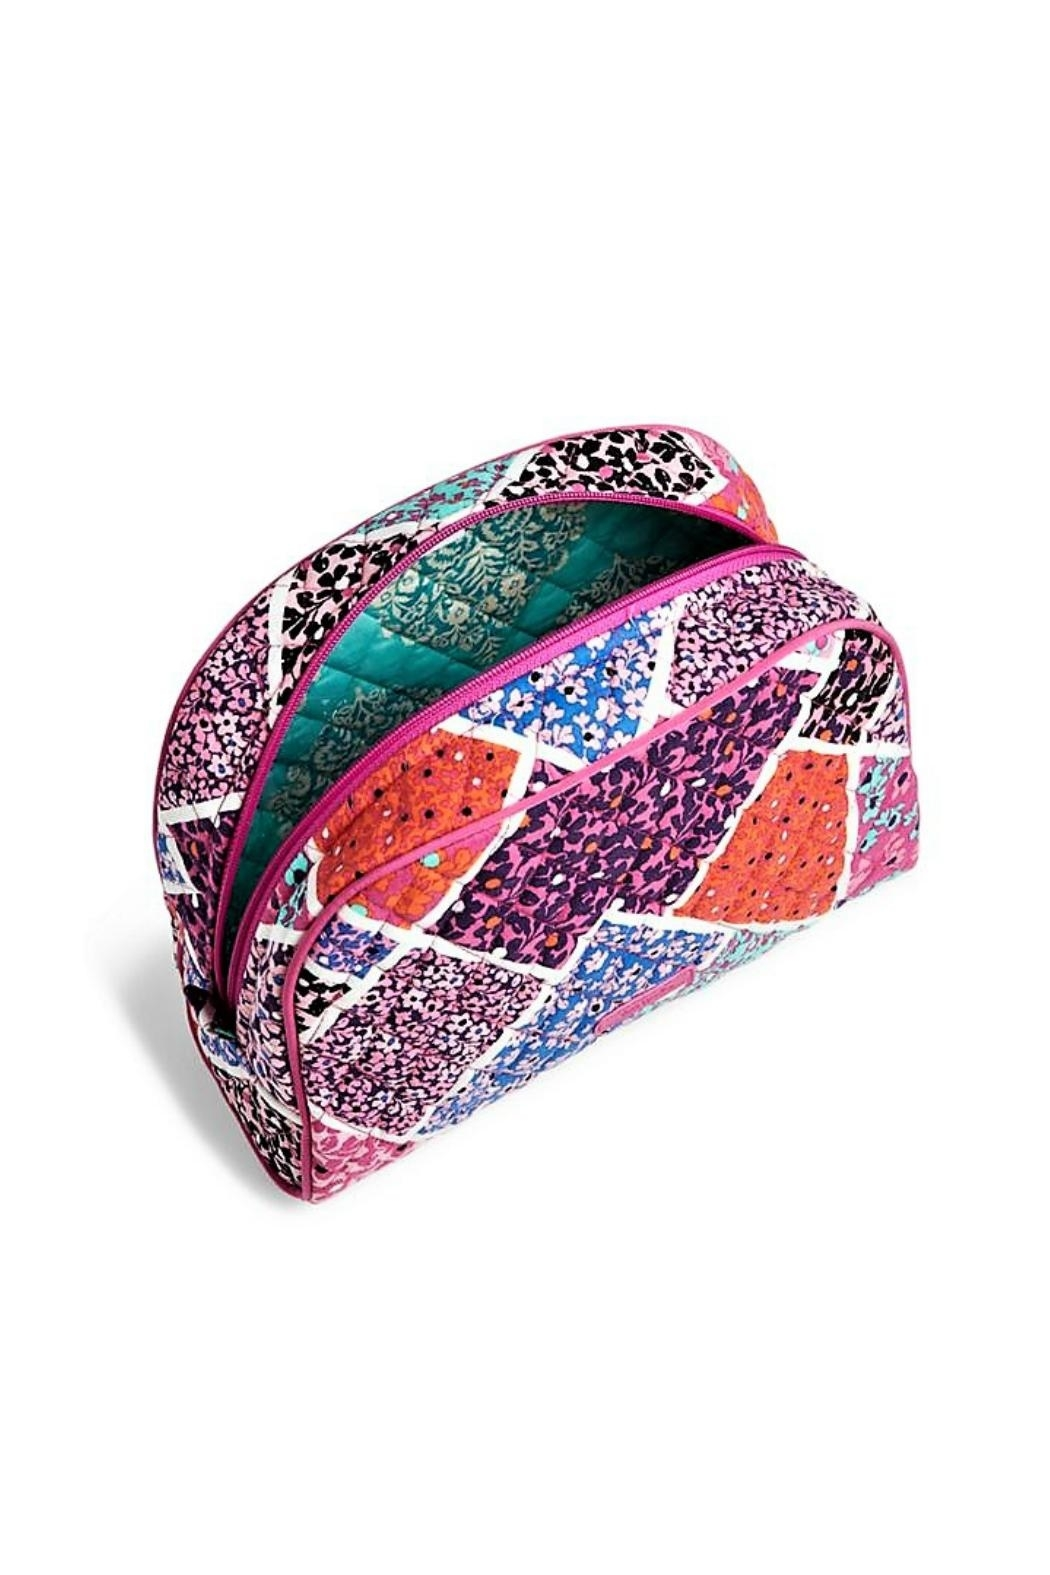 Vera Bradley Modern Medley Cosmetic Pouch - Front Full Image